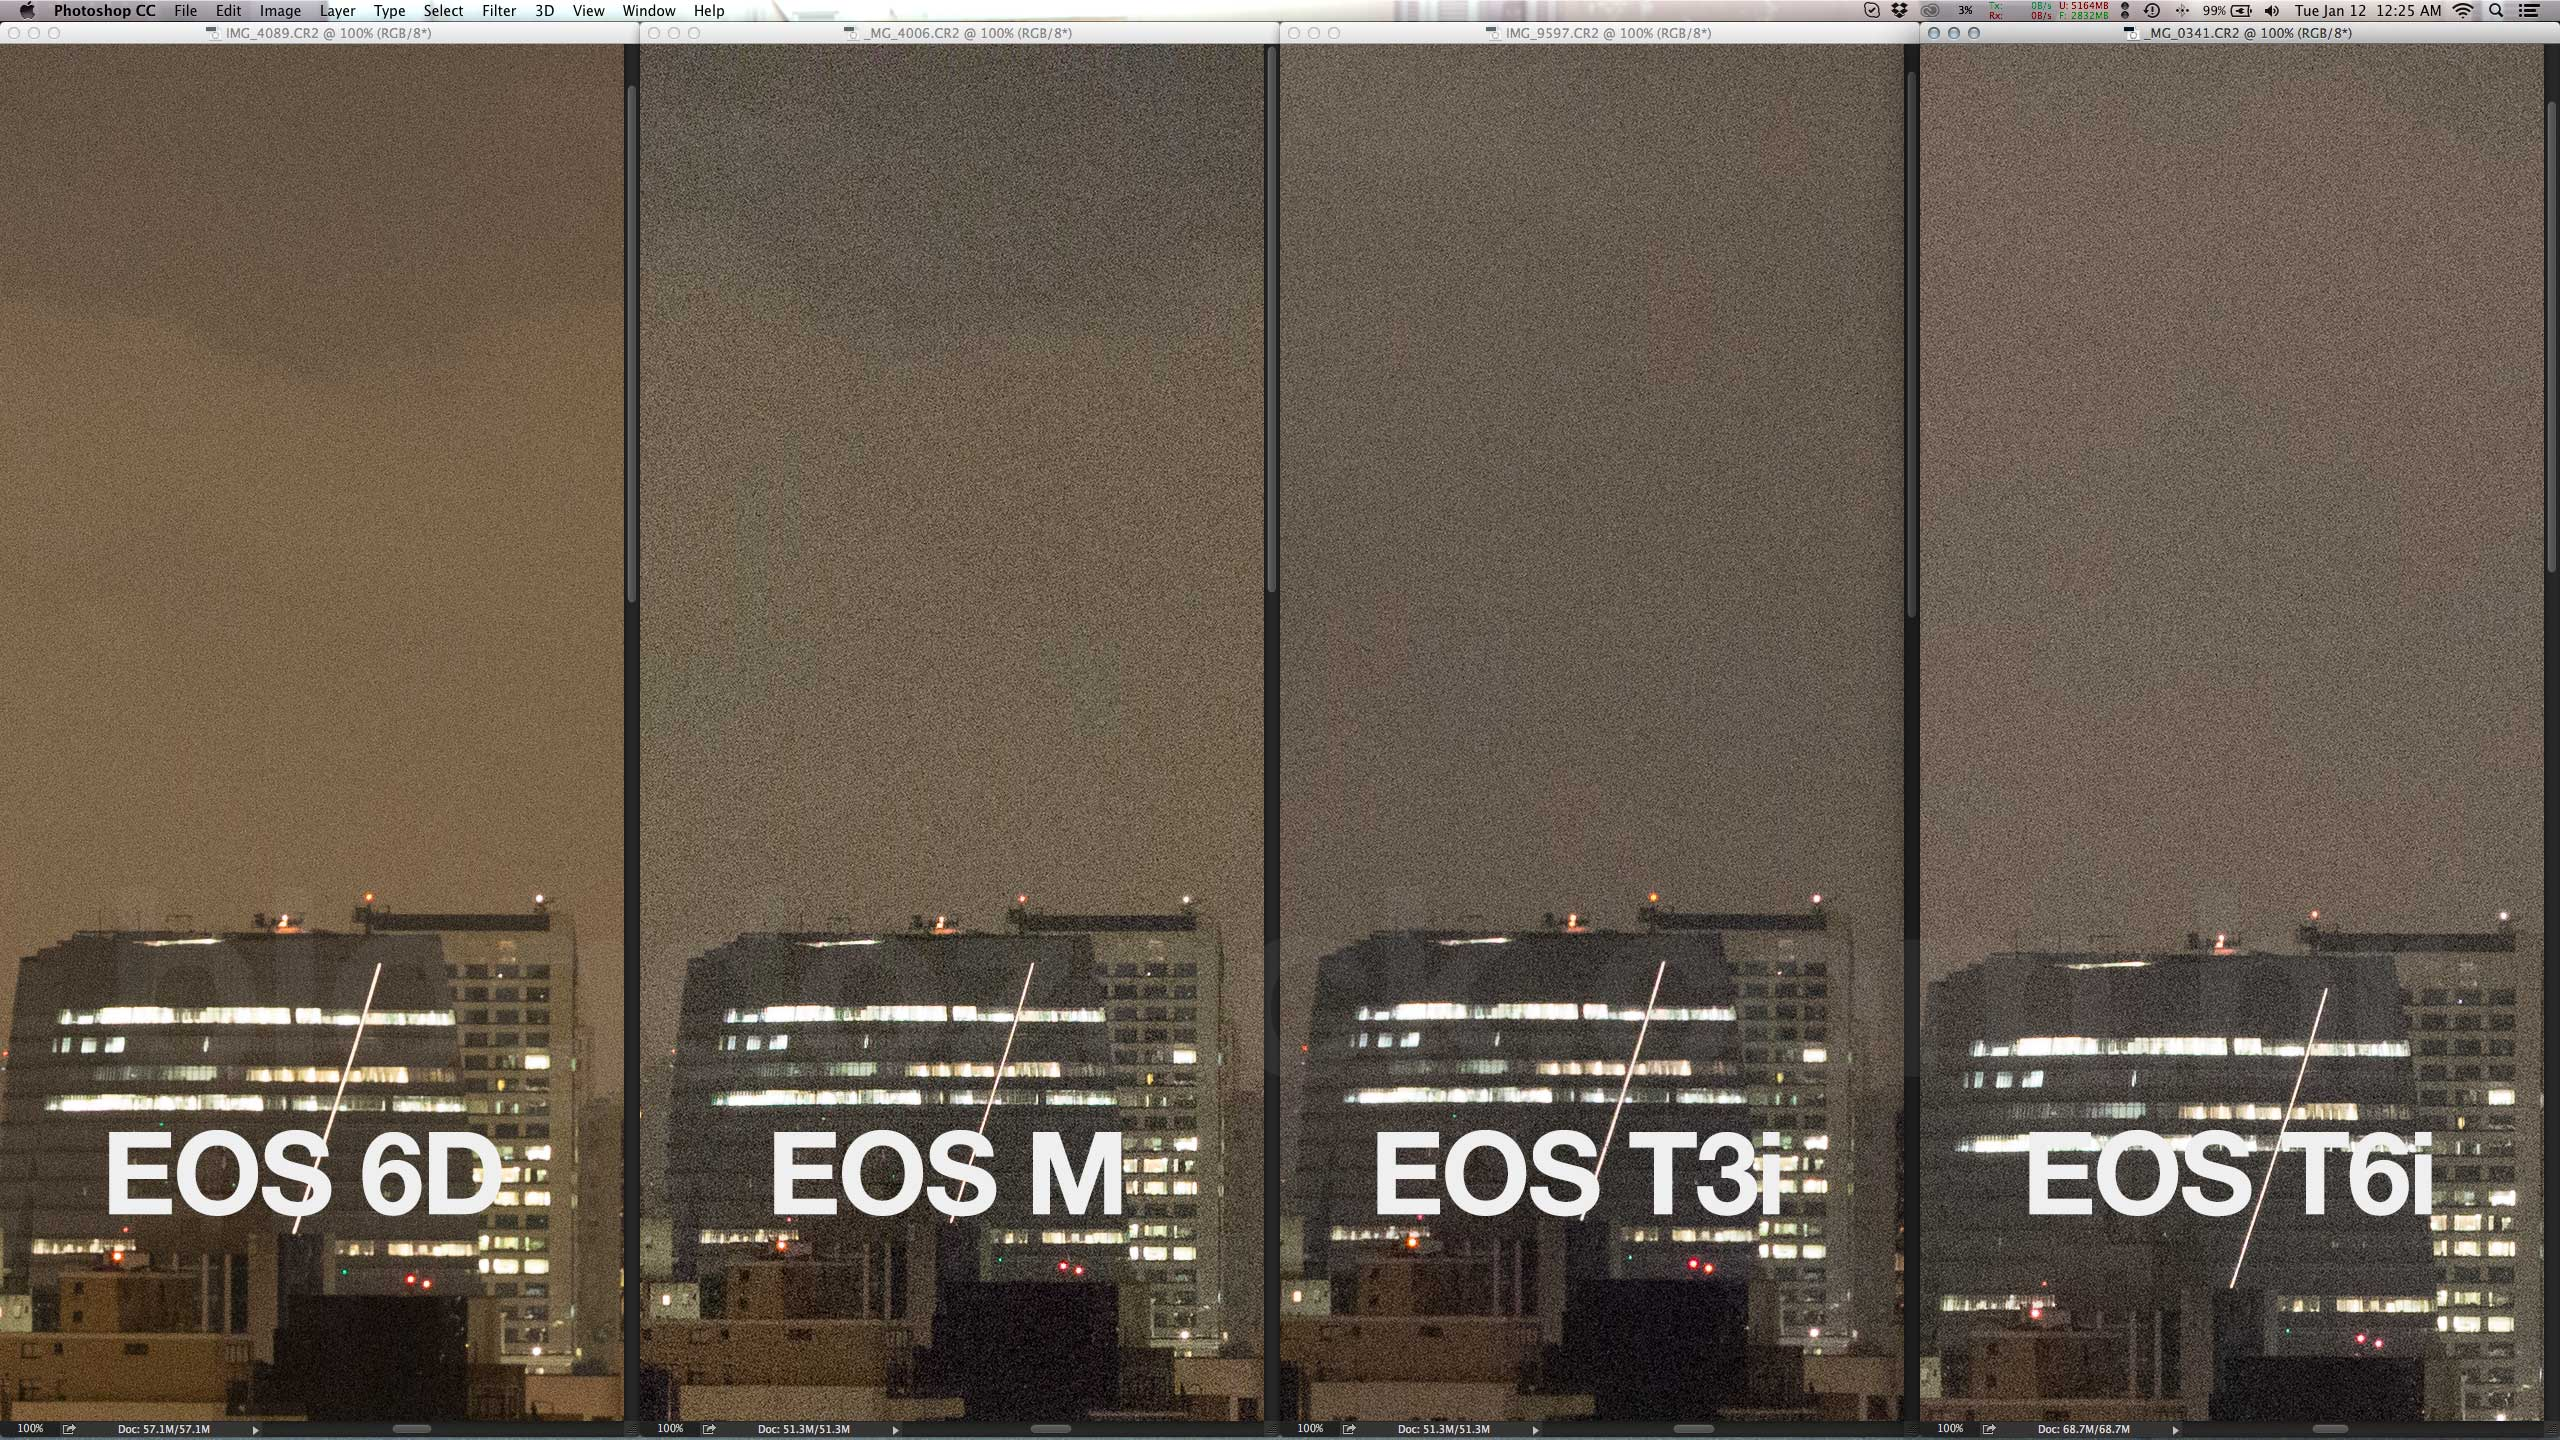 The EOS 6D is cleaner, but all cameras show some tendency for purple casts at high ISOs midtones.